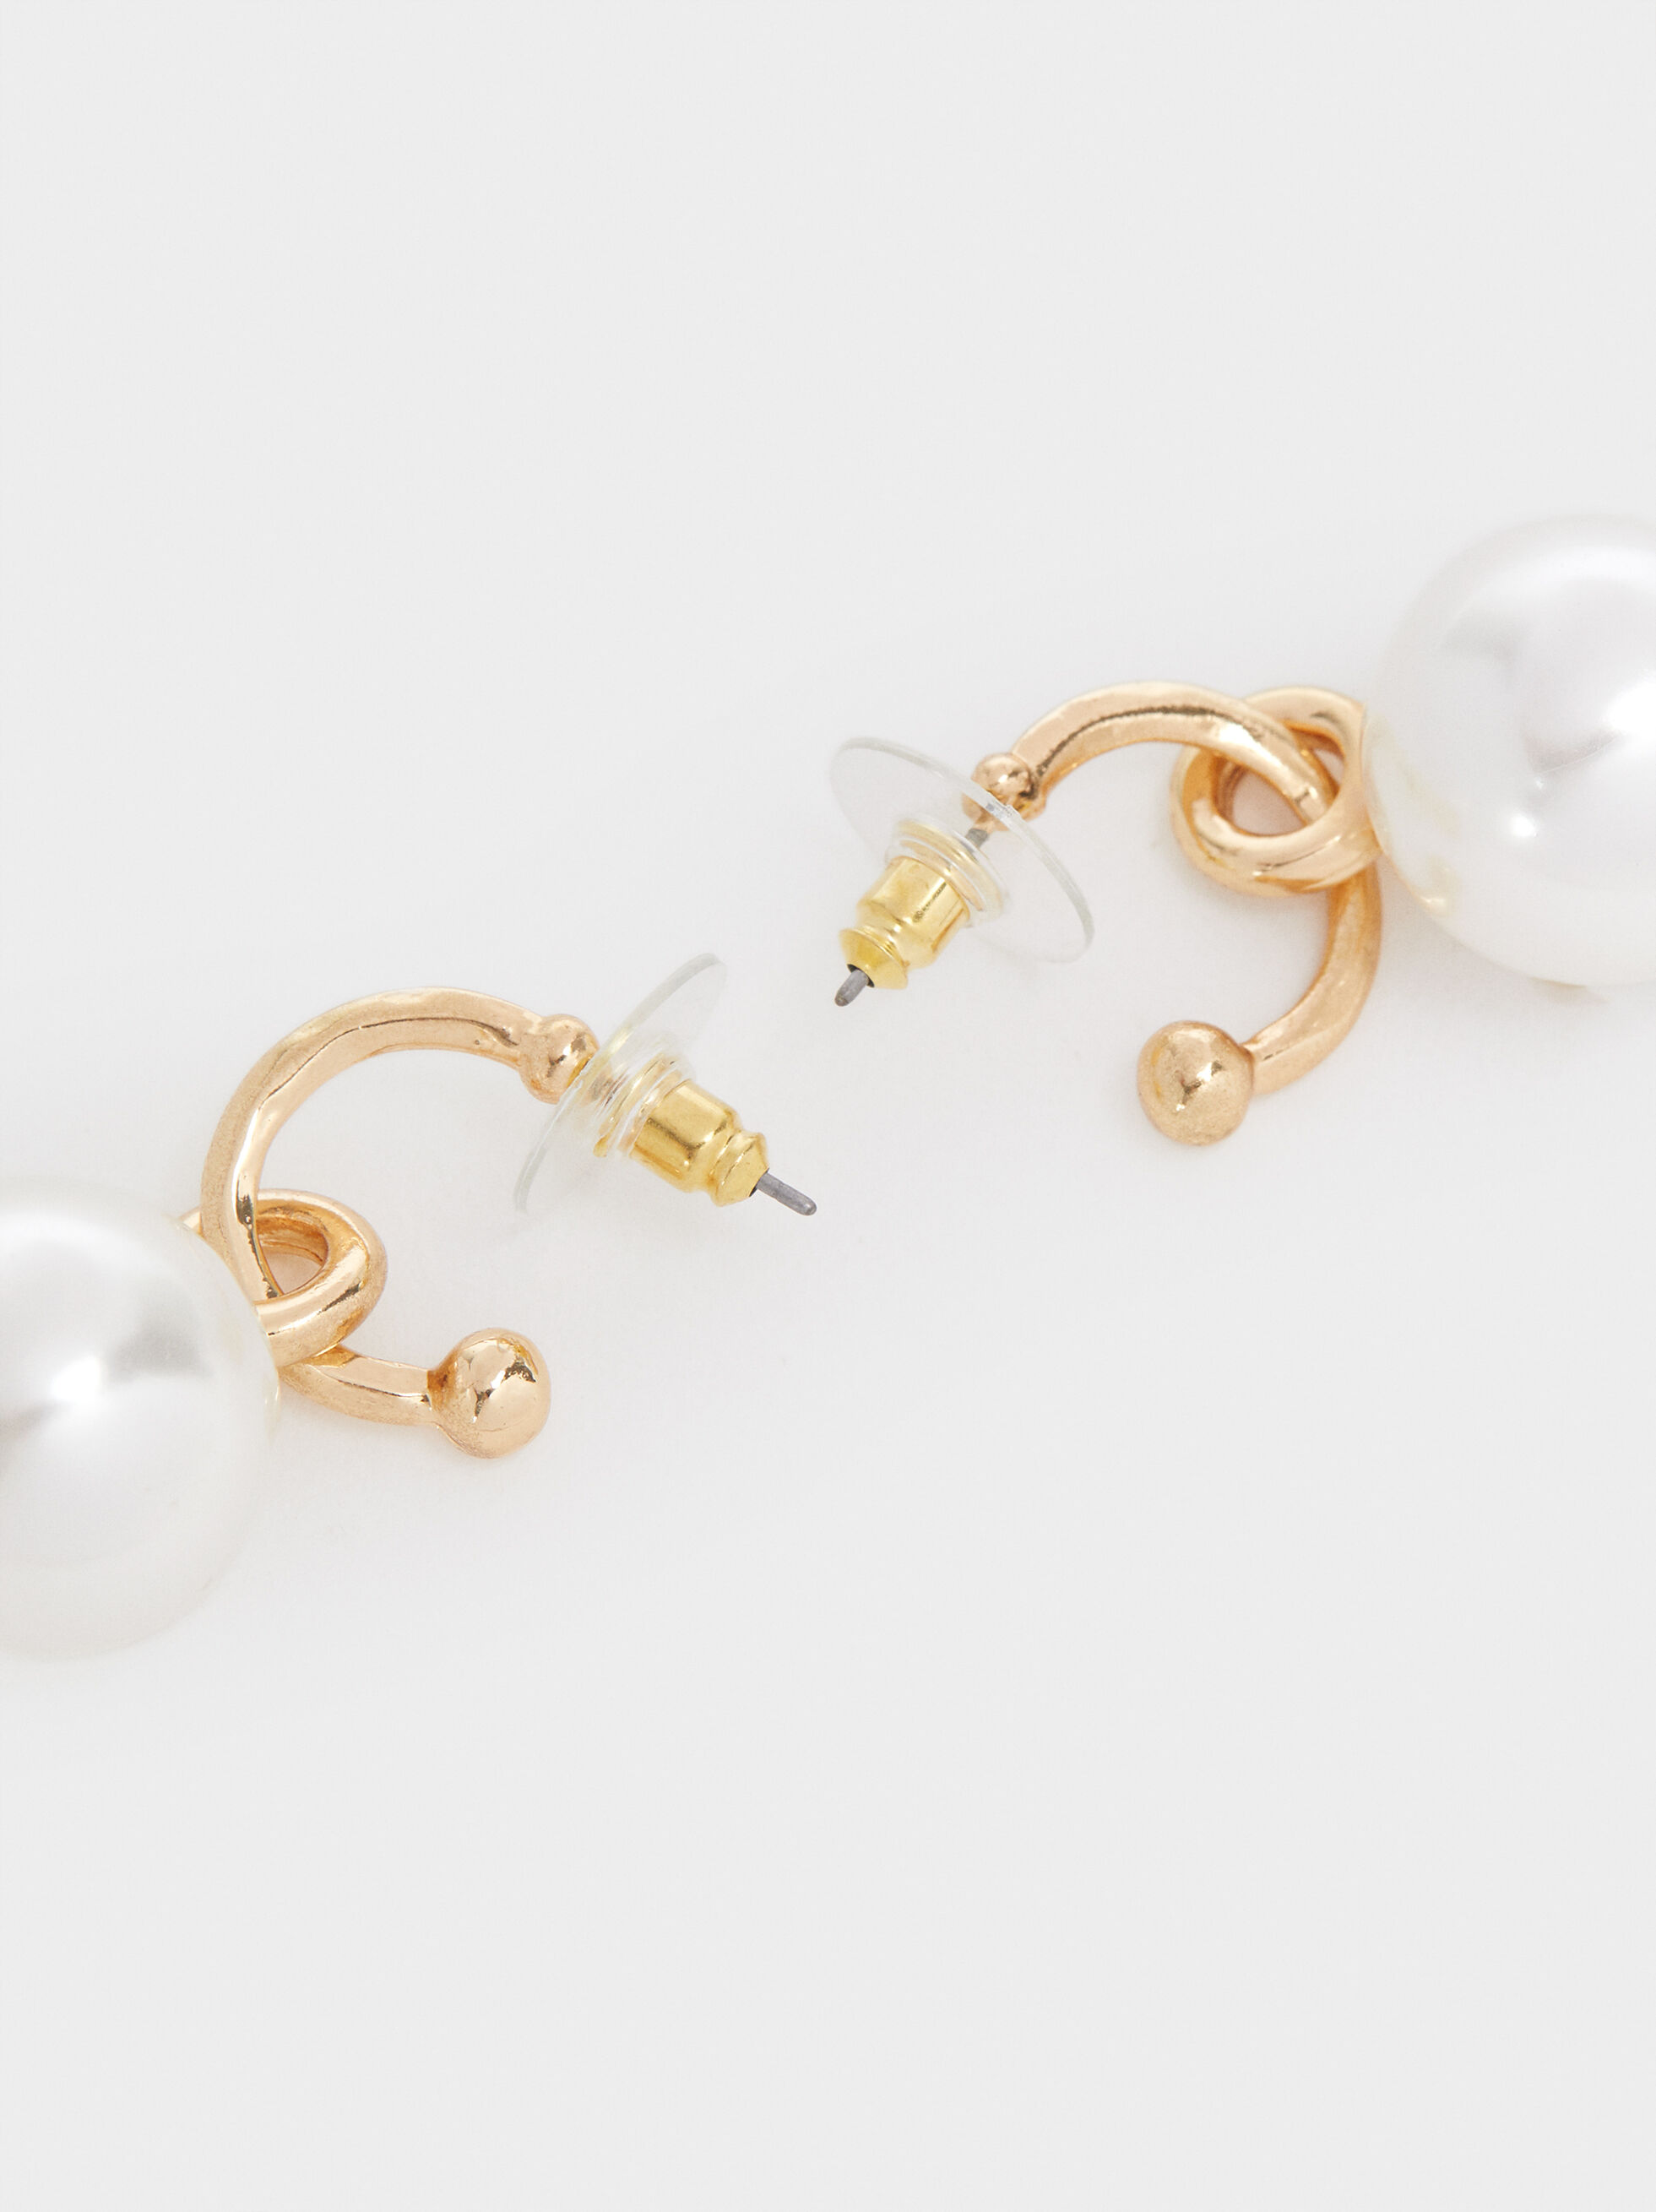 Medium Gold-Toned Hoop Earrings With Pearls, Golden, hi-res